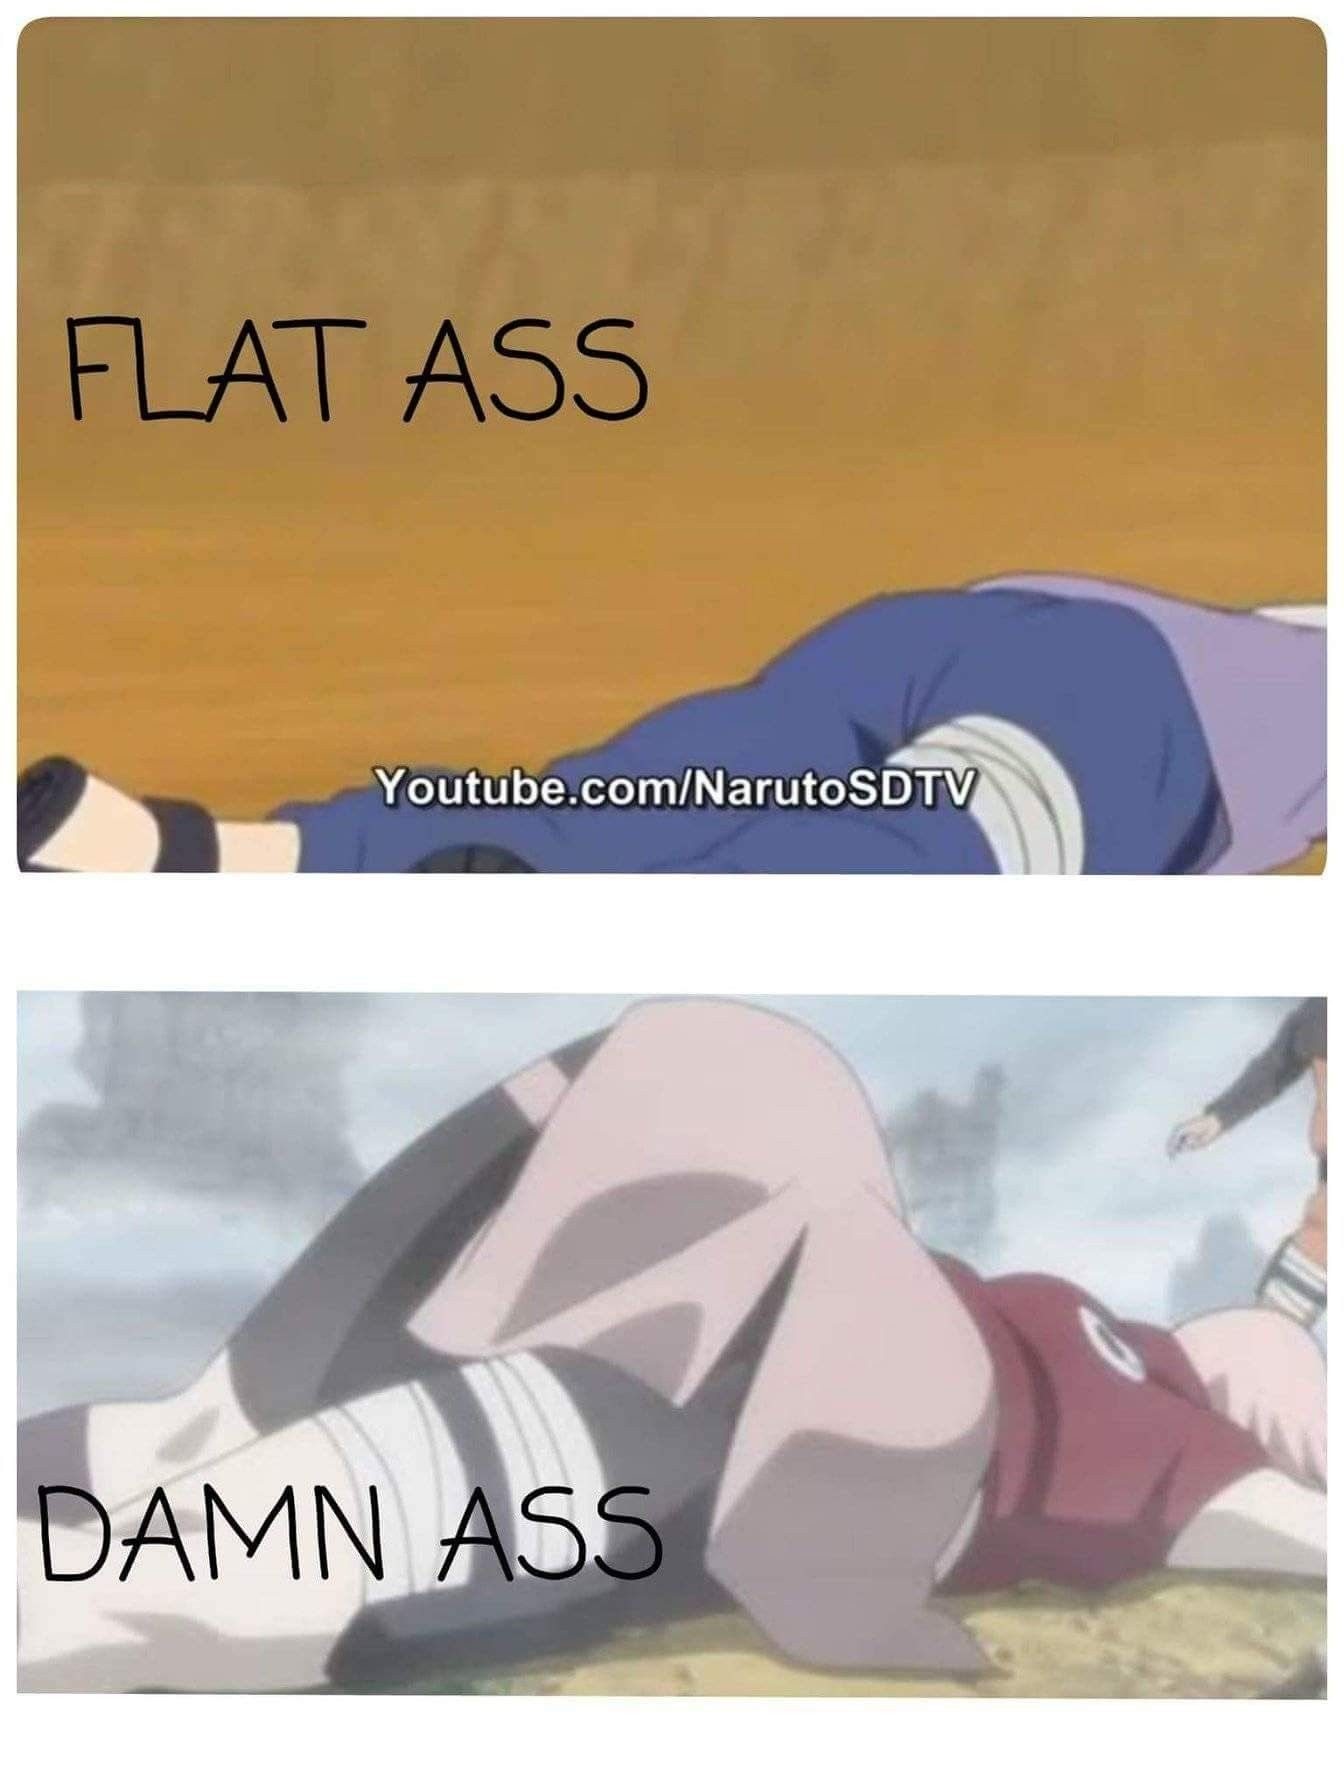 Haha Sakuras Ass Is Much Better Than Hinatas Ass Justice Was Made  E2 9d A4  E2 9d A4  E2 9d A4 Ef B8 8f